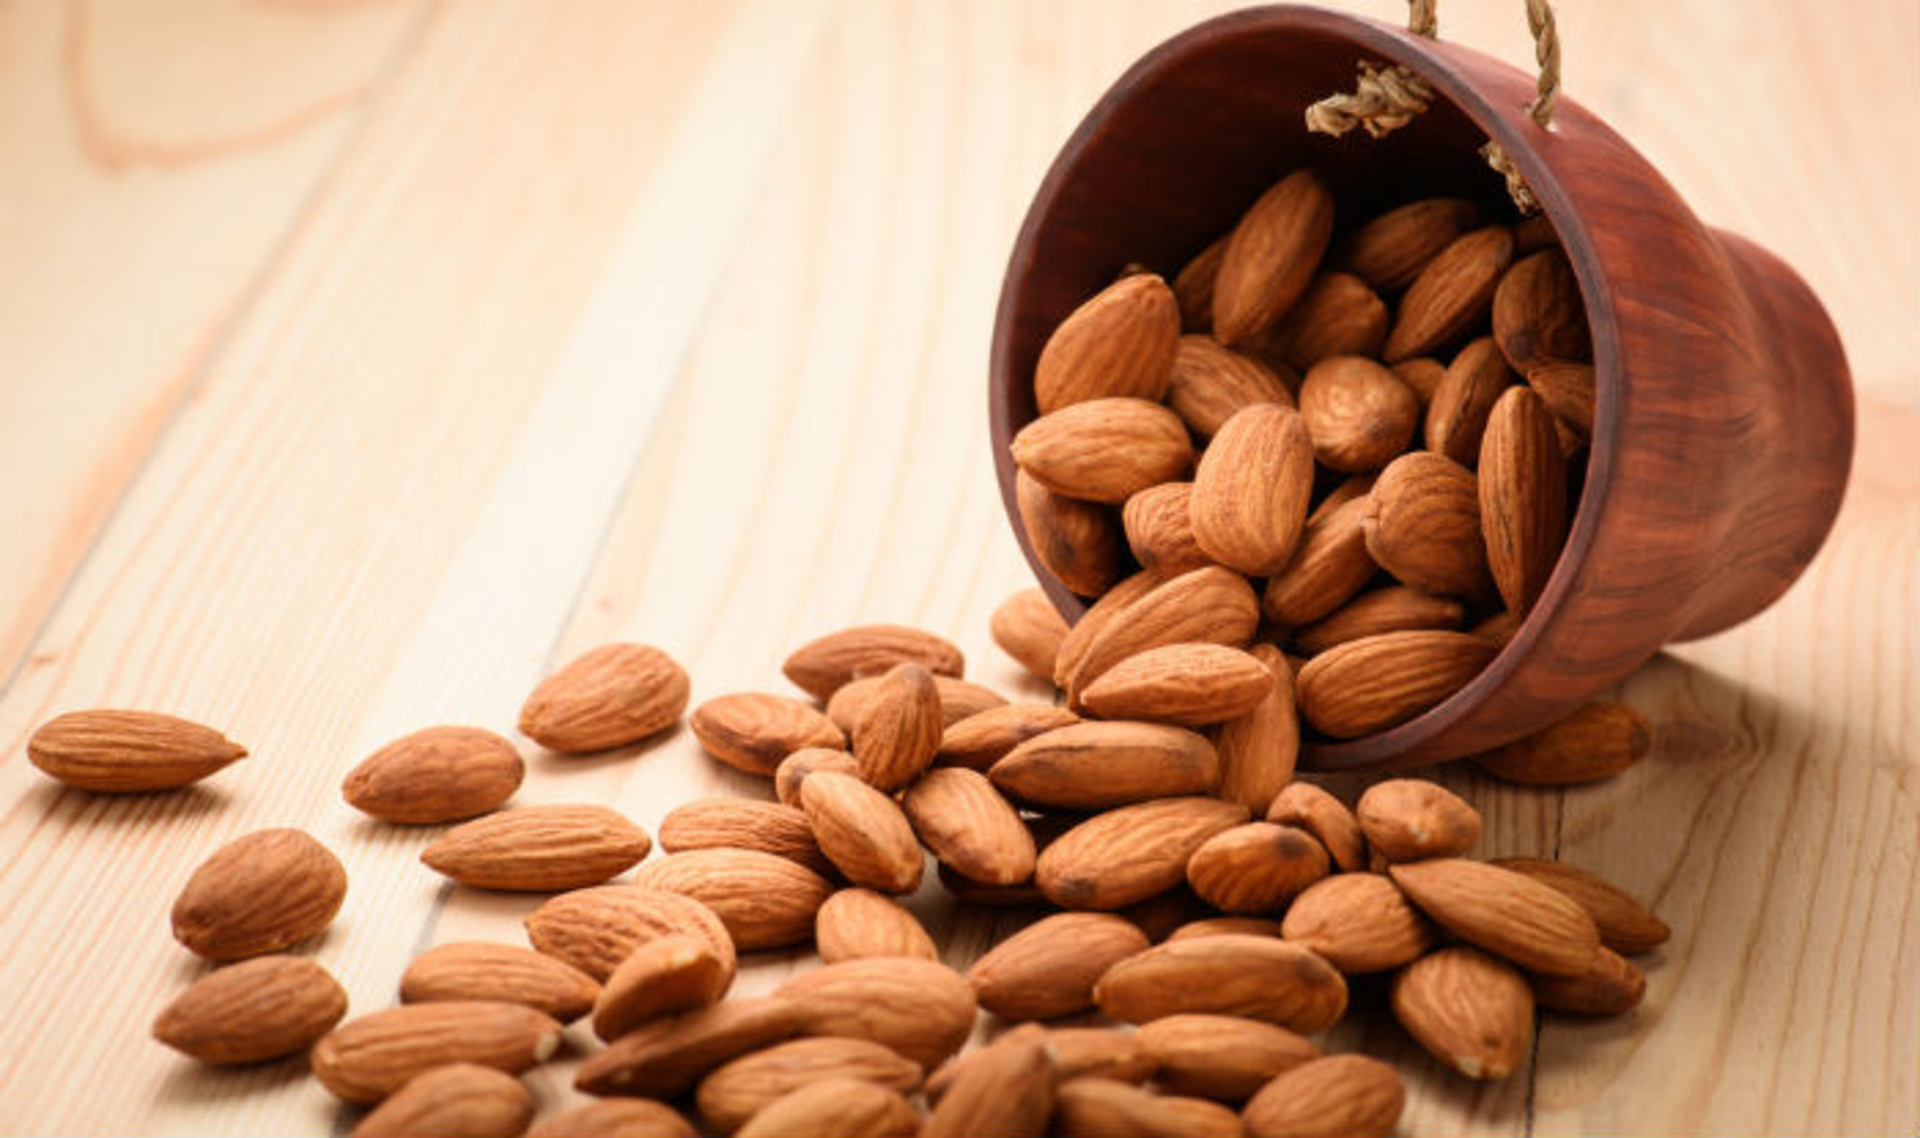 _Girlinskinnyfit_ - Almonds